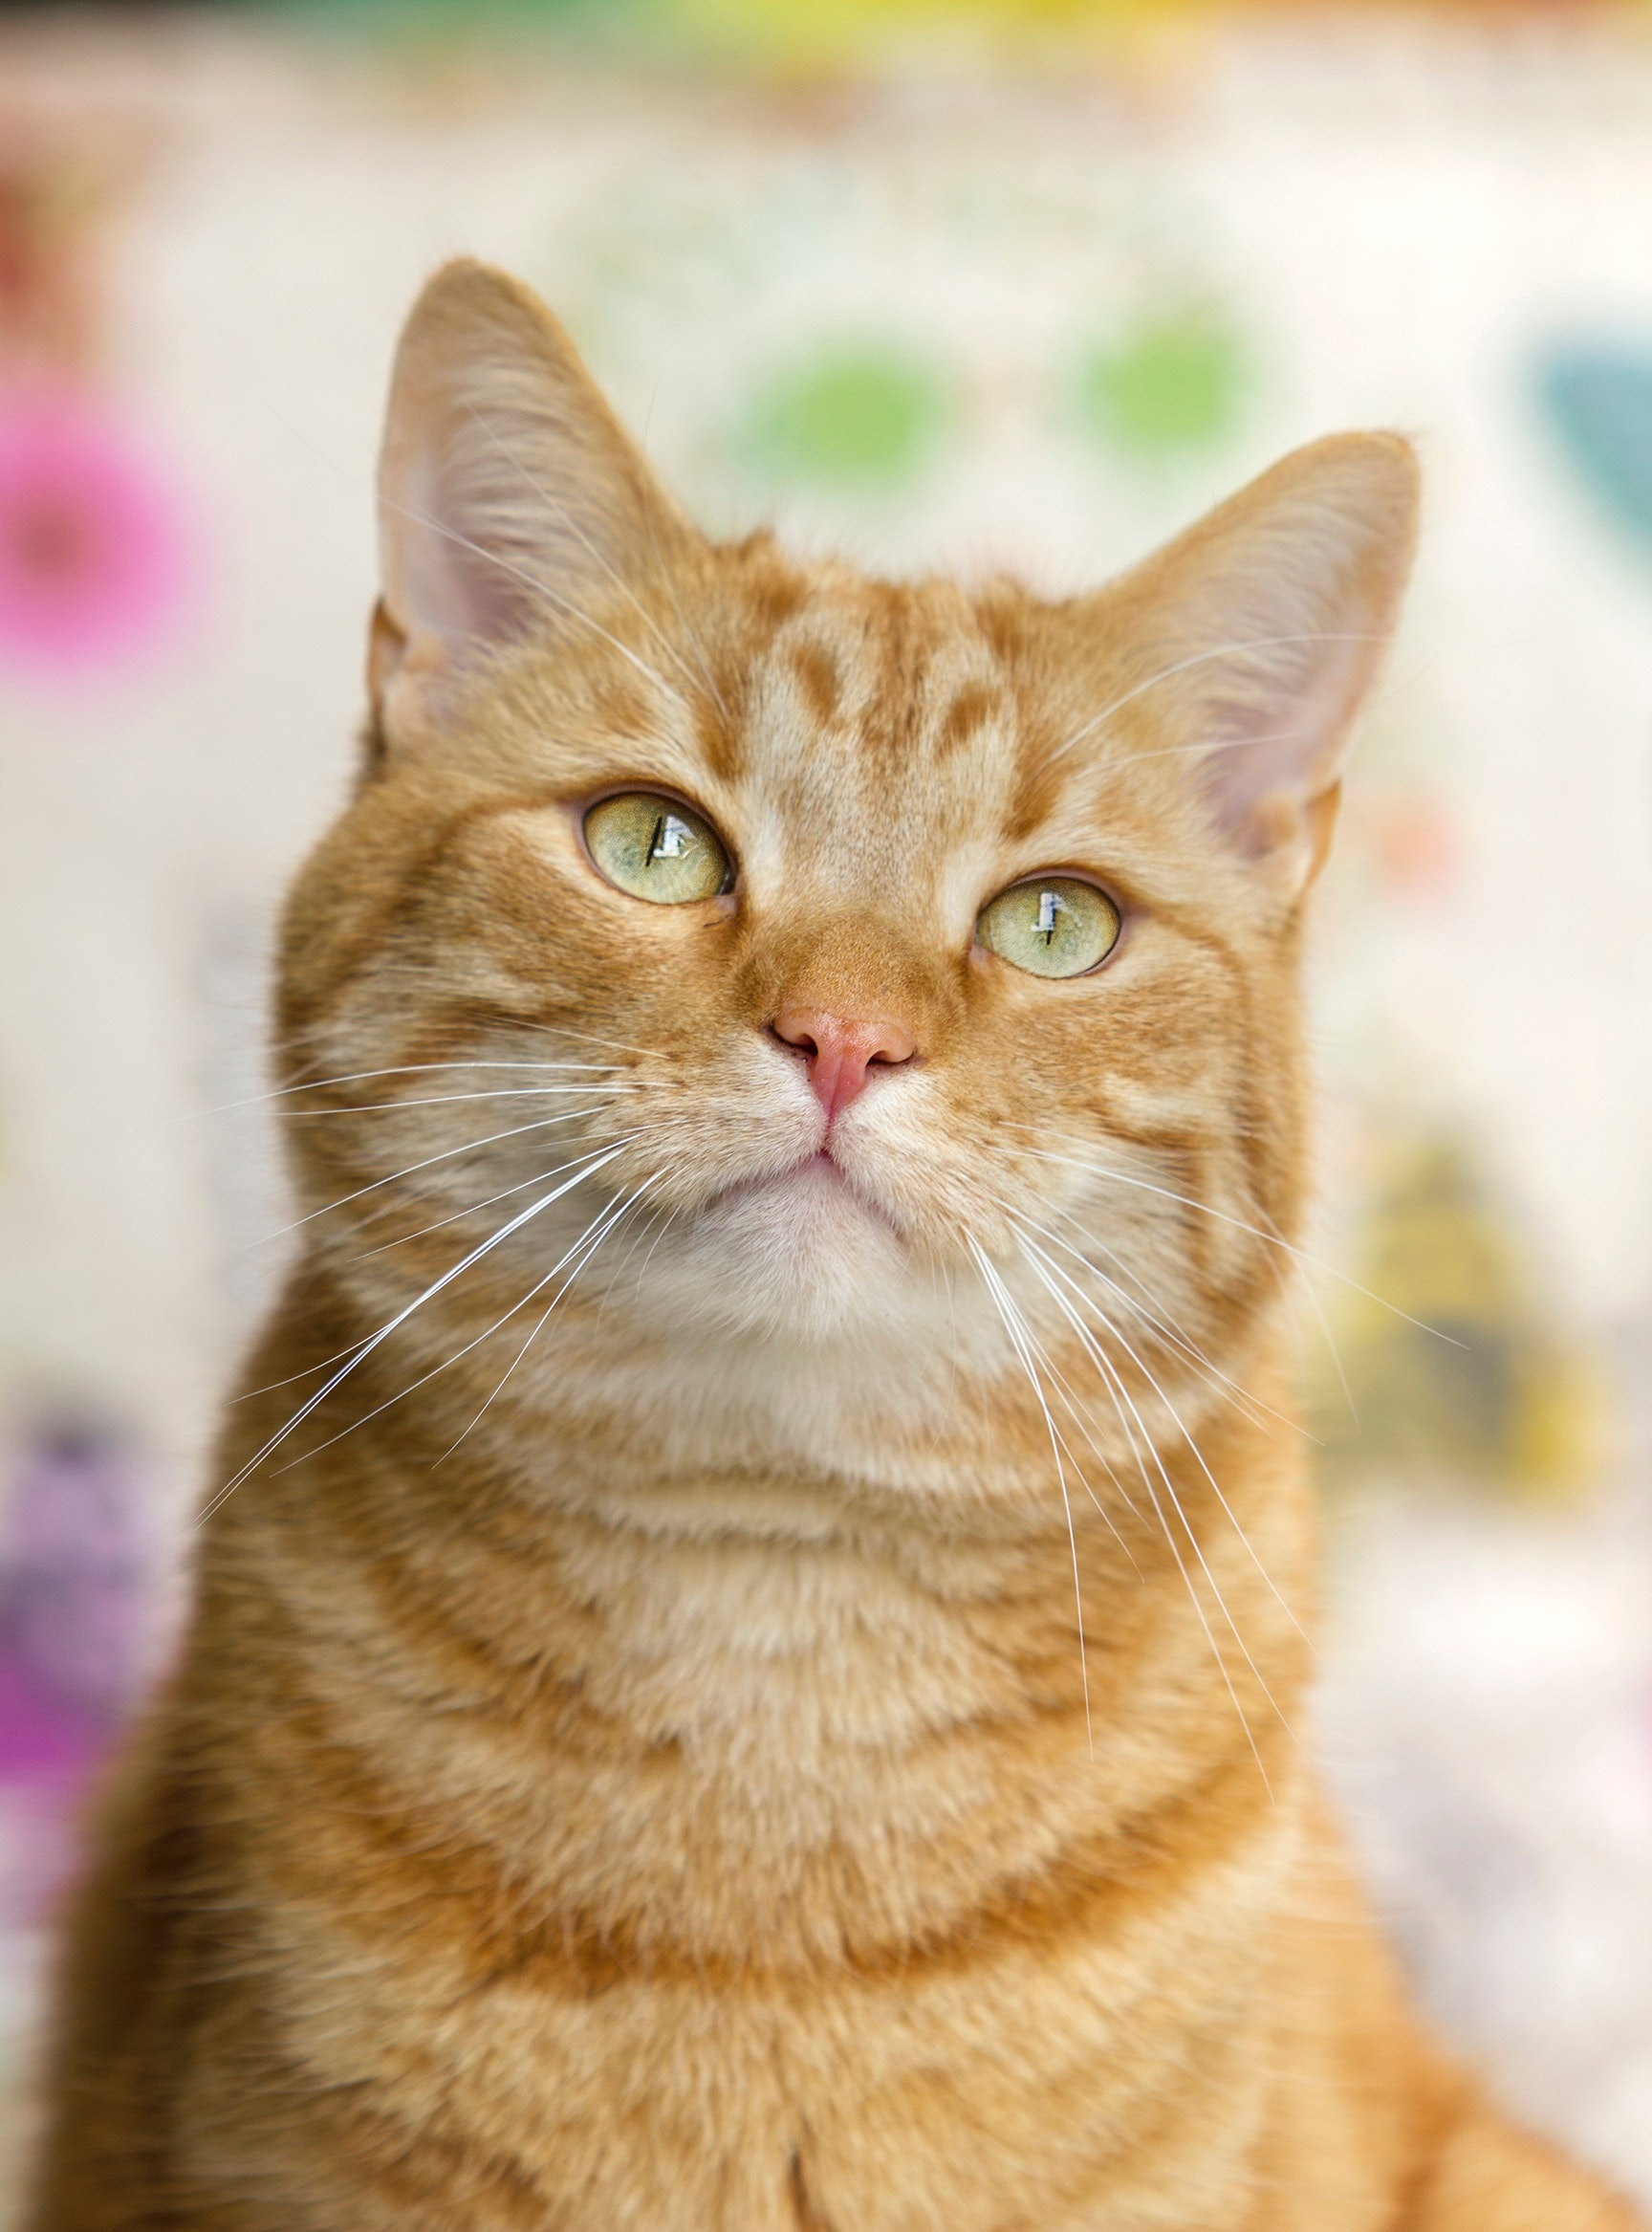 Brown Short Coated Cat, Feline, Young, Whiskers, Tabby, HQ Photo